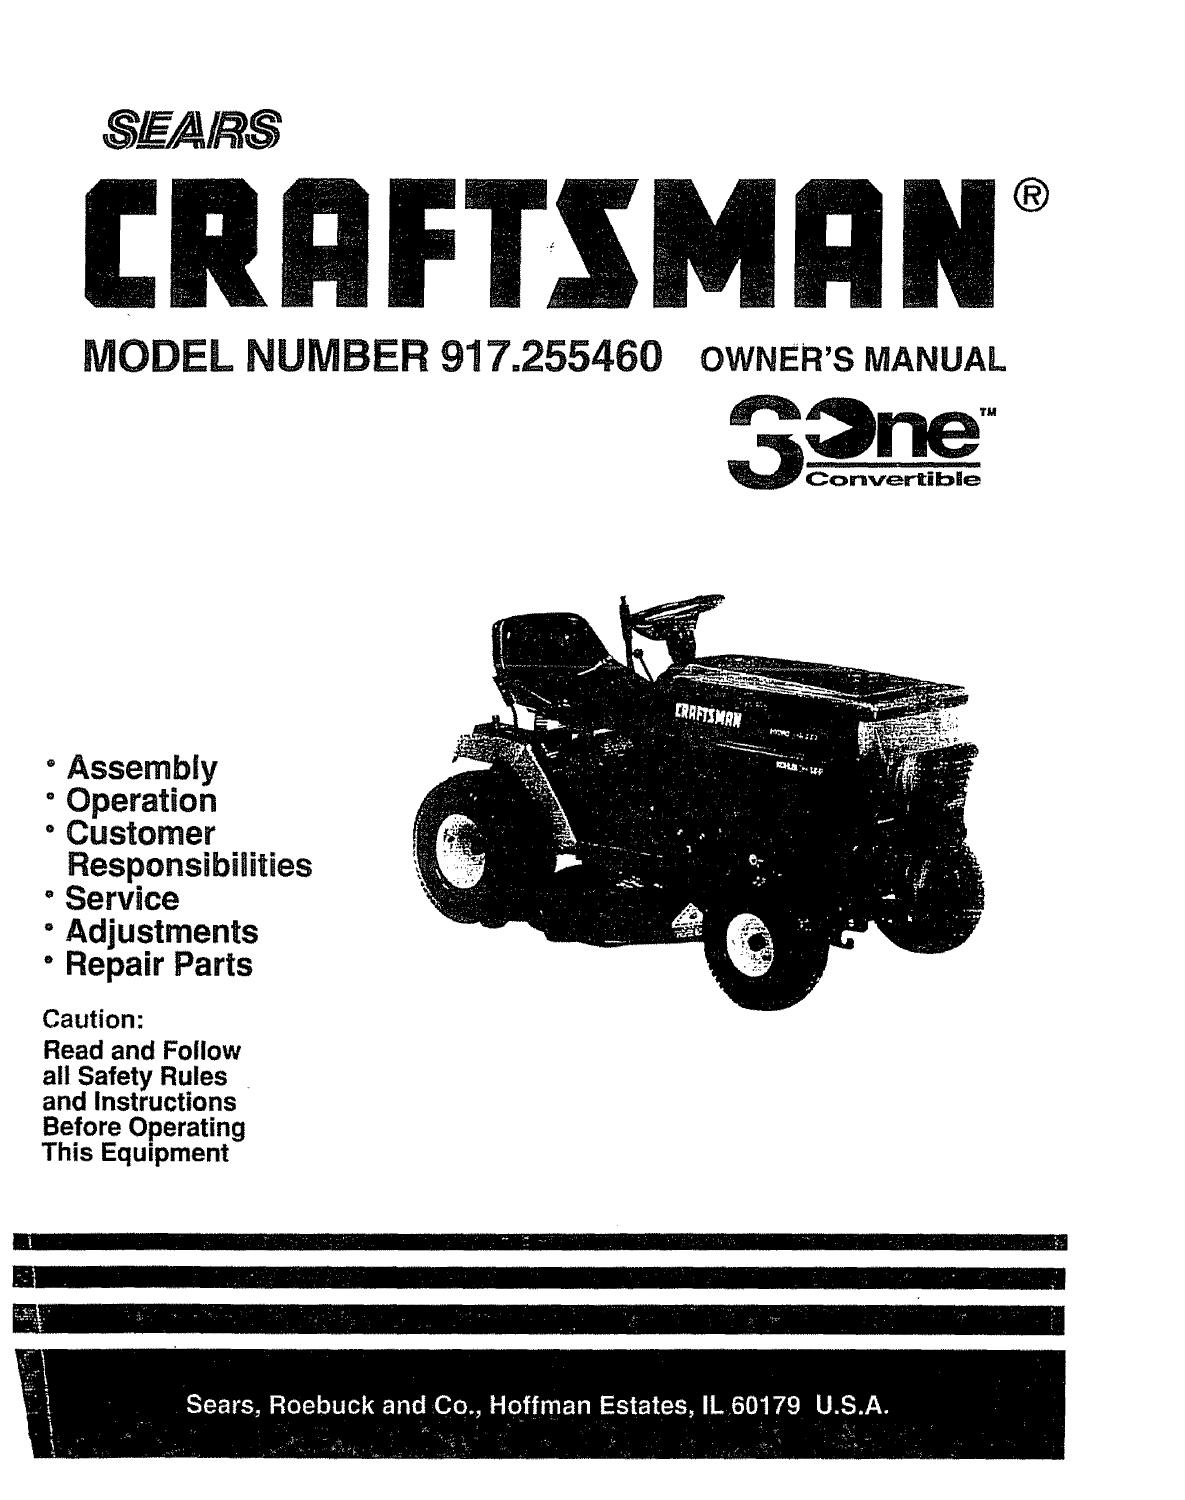 SEARS Craftsman Lawn Mower Model 917 255460 by glsense issuu